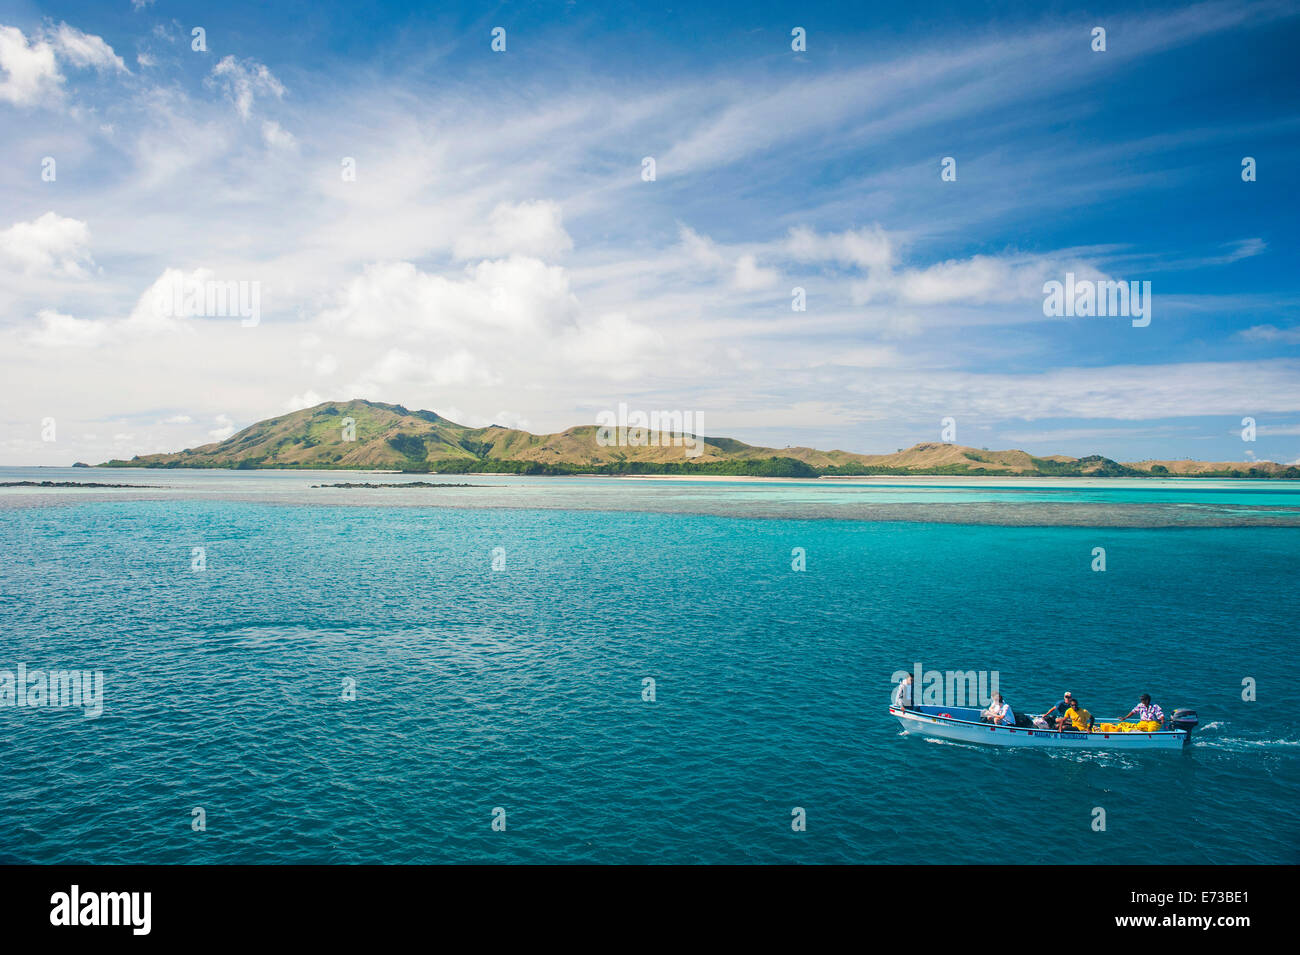 Little boat in the blue lagoon, Yasawas, Fiji, South Pacific, Pacific - Stock Image